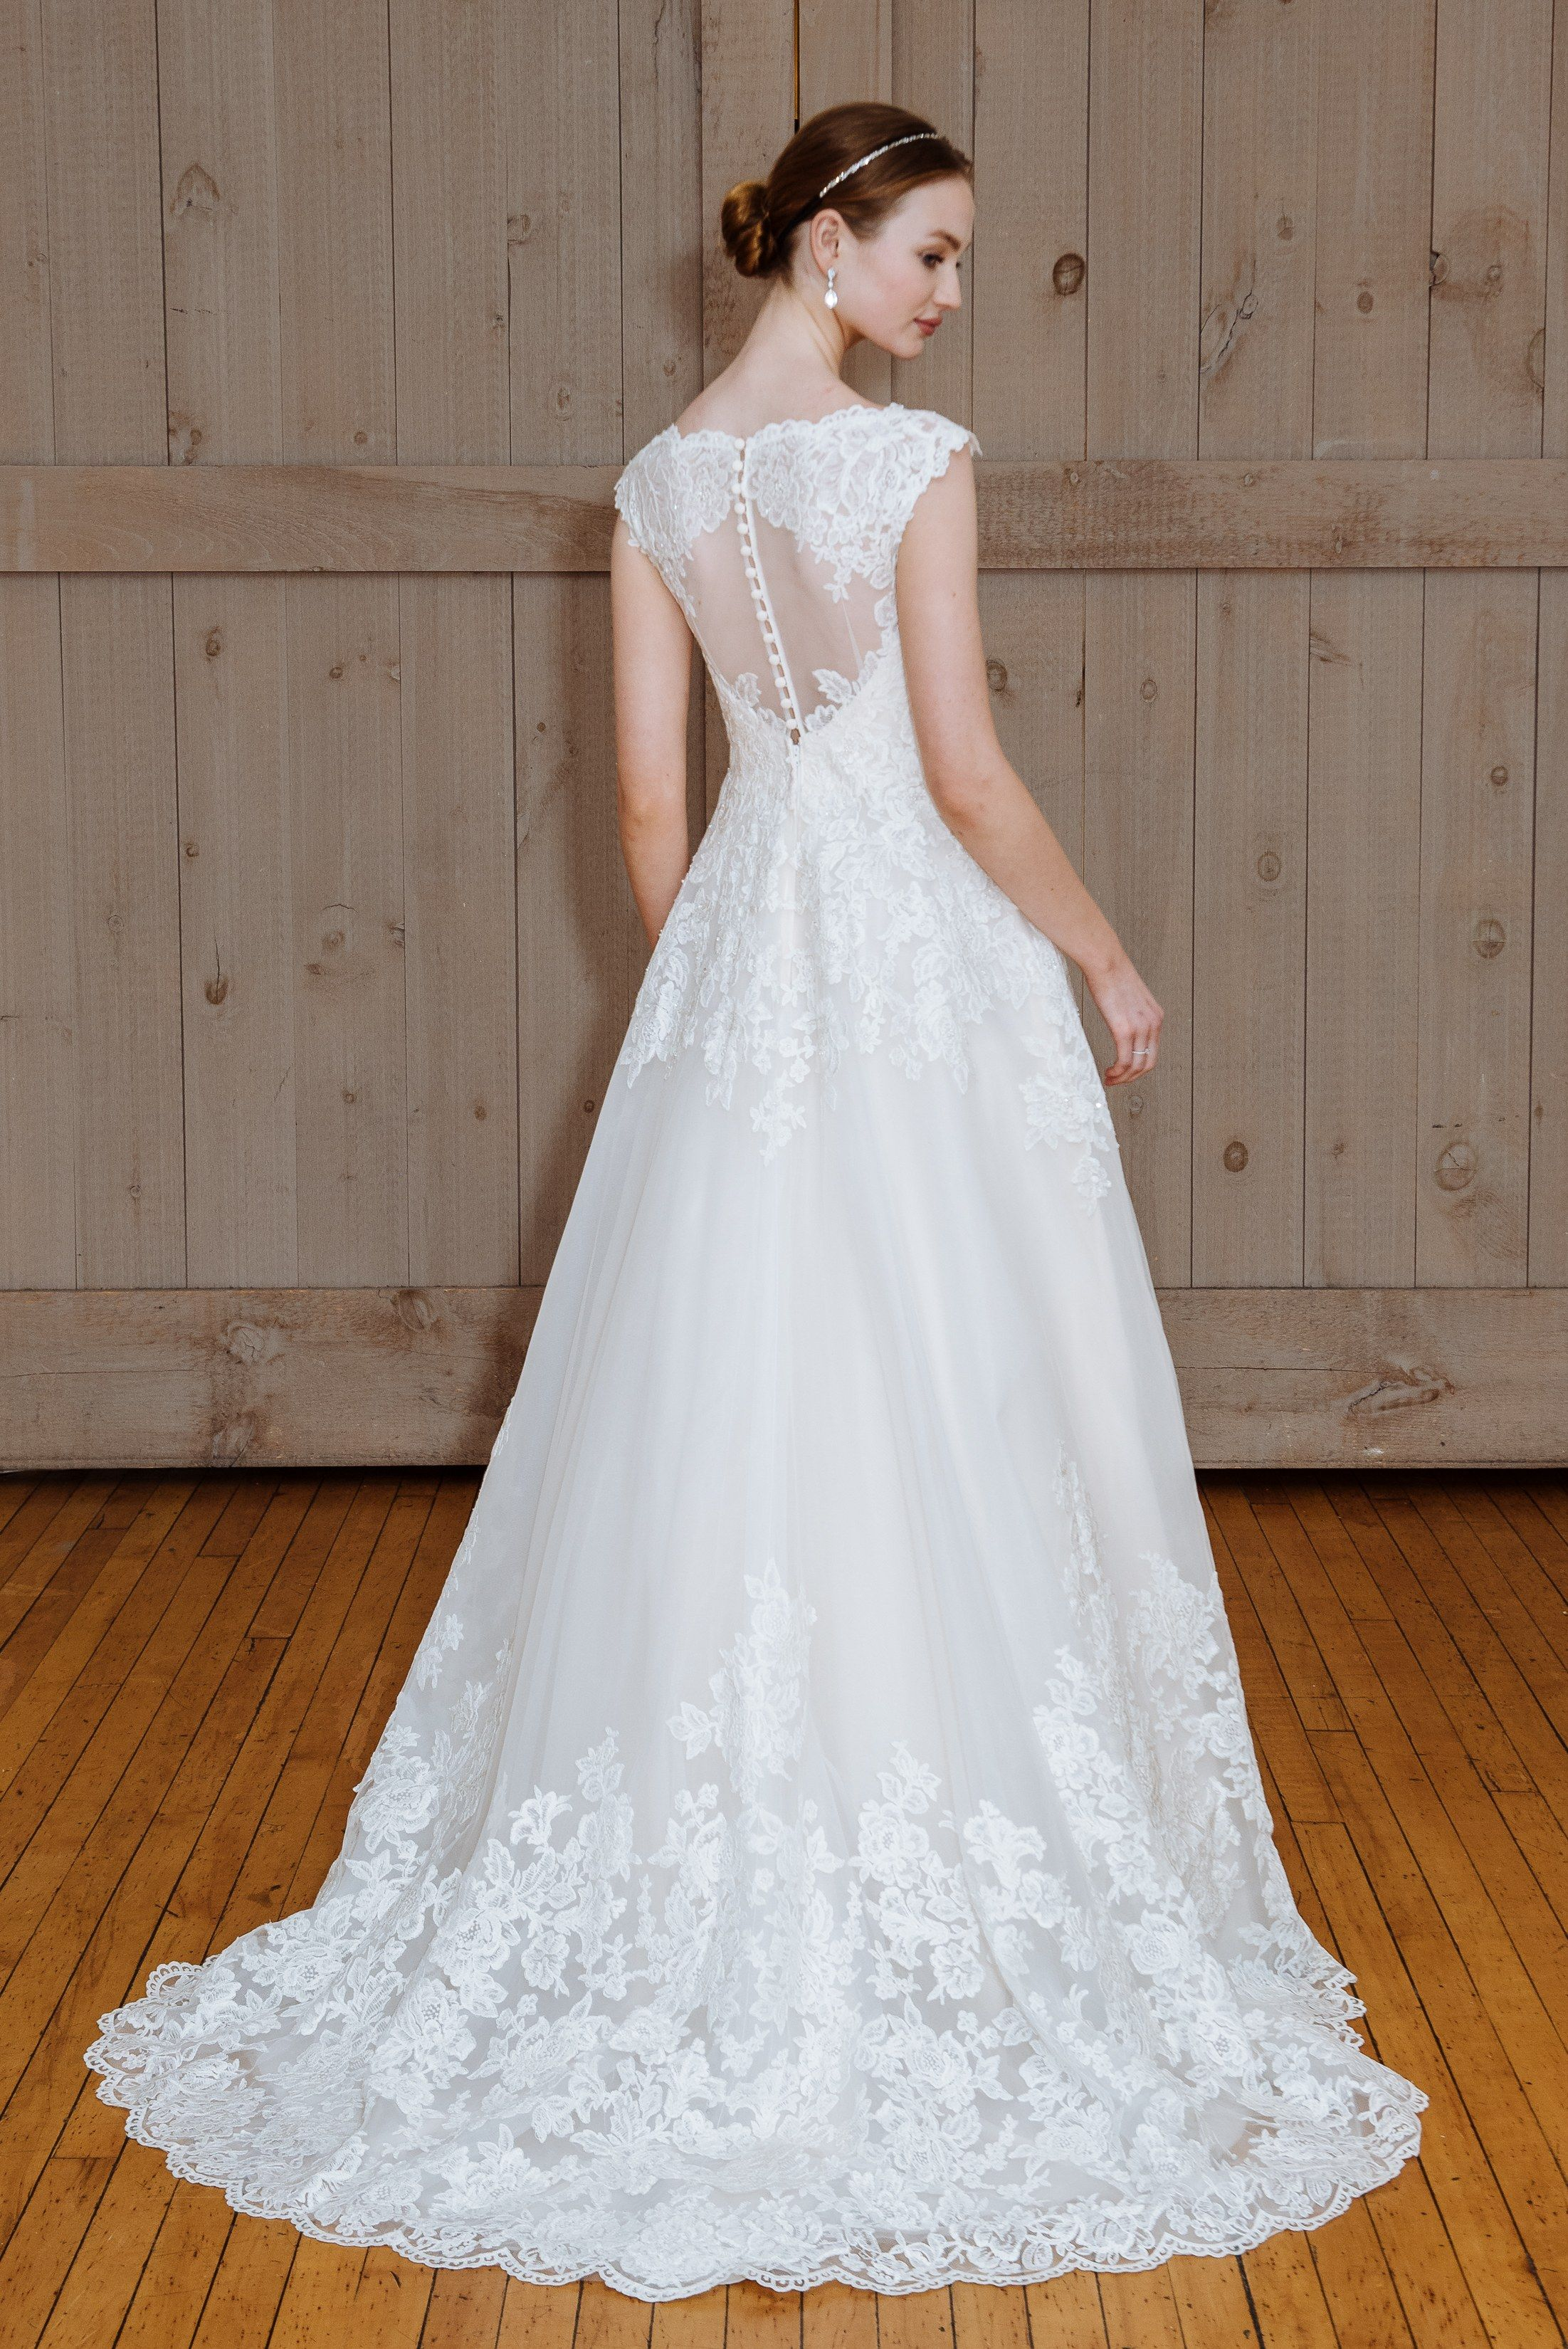 Cheap casual wedding dresses  Classic Wedding Dresses You Wonut Hate  Years From Now  Brides